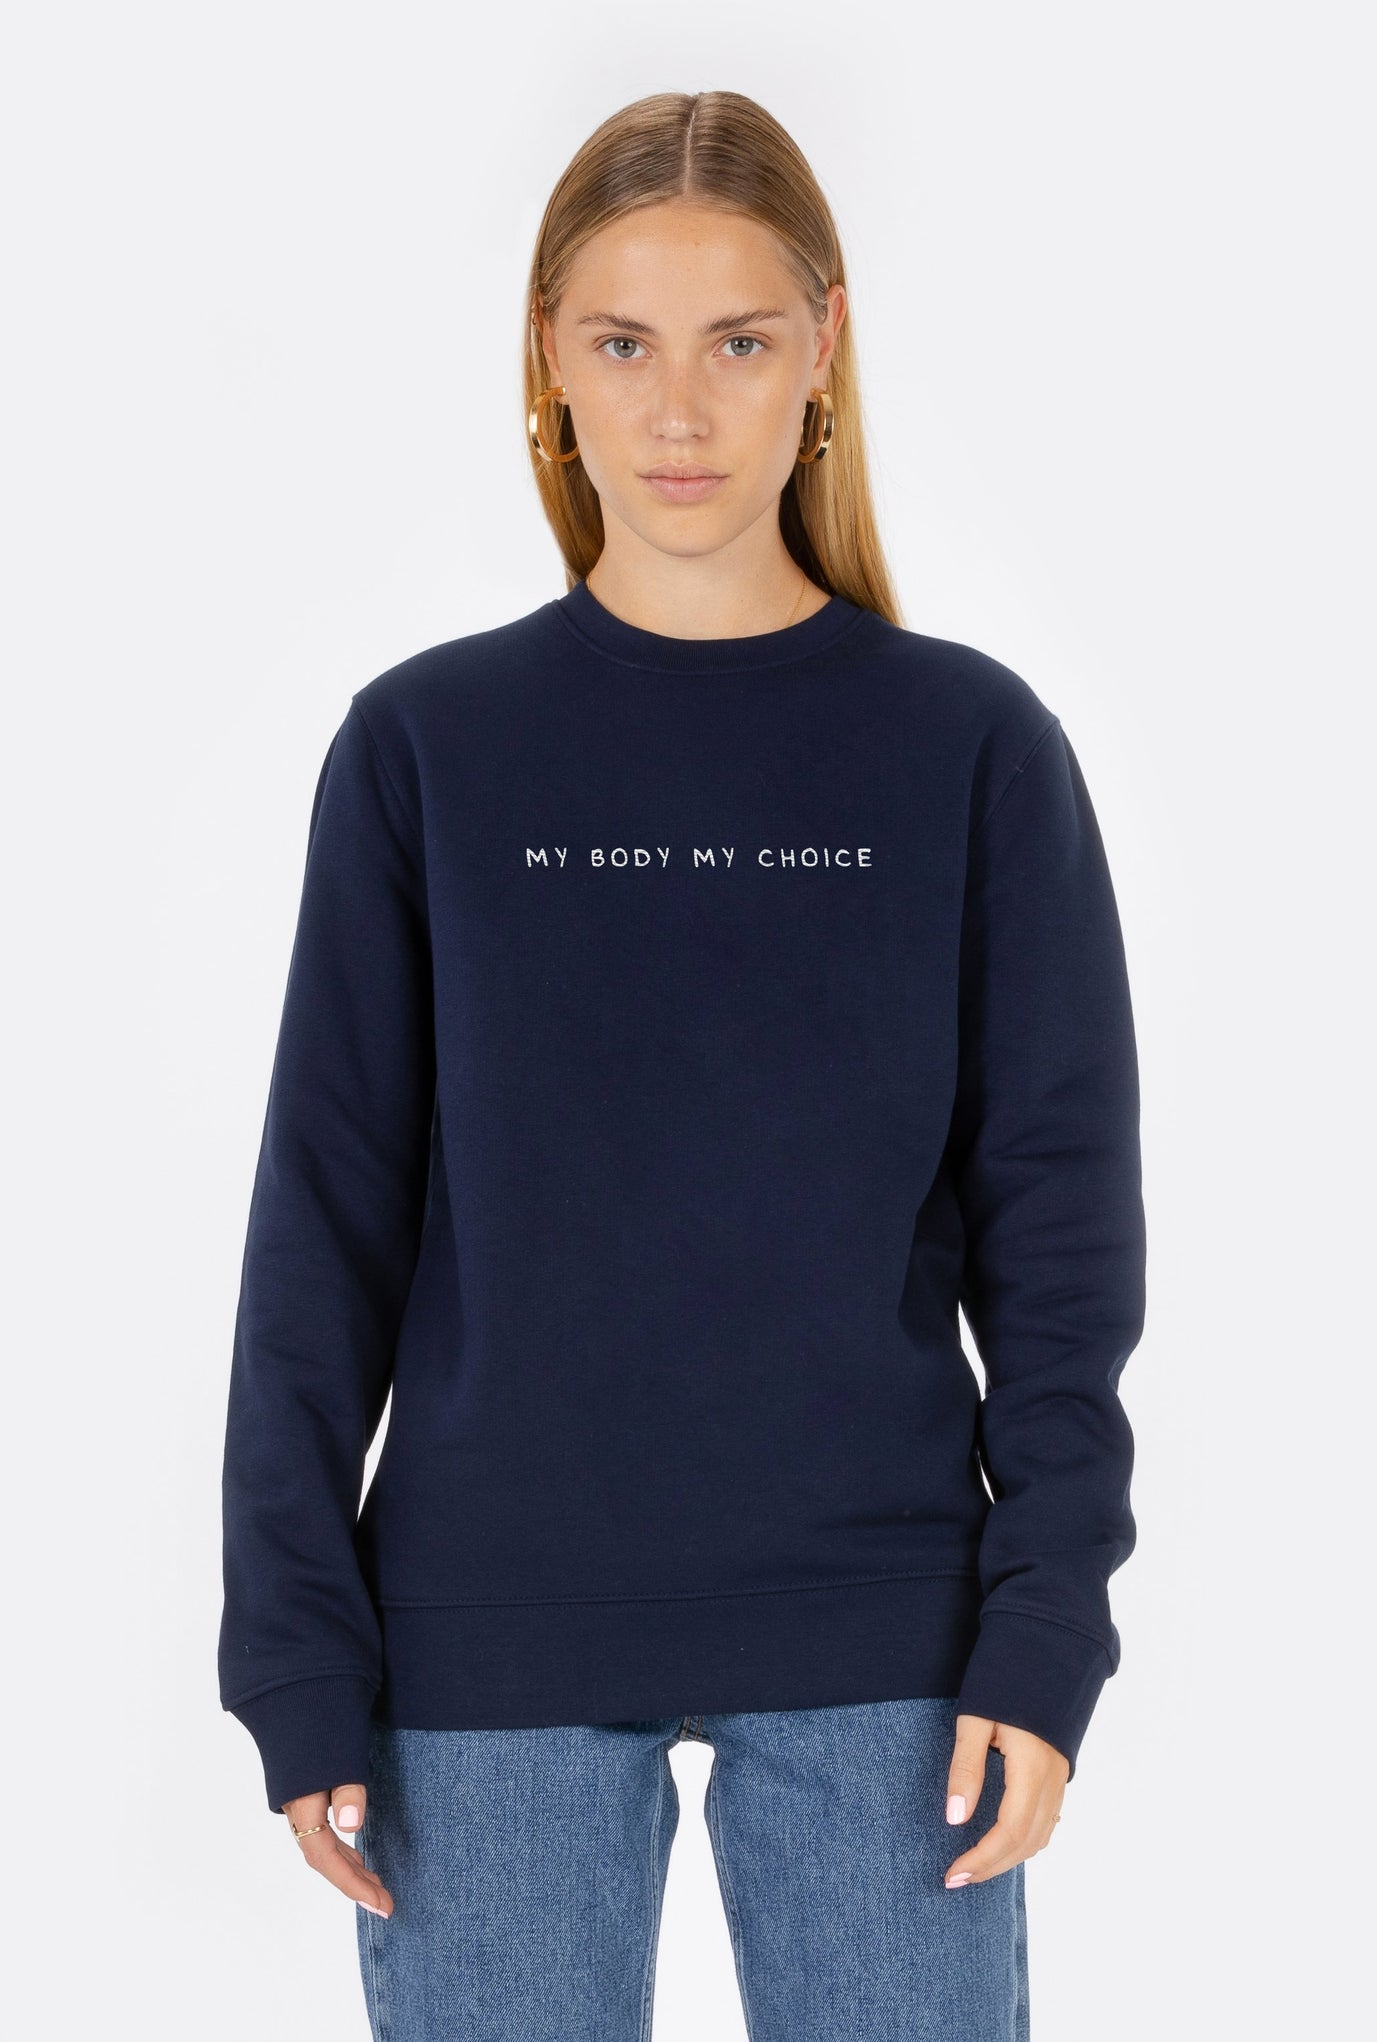 Crewneck My Body My Choice - Embroidered